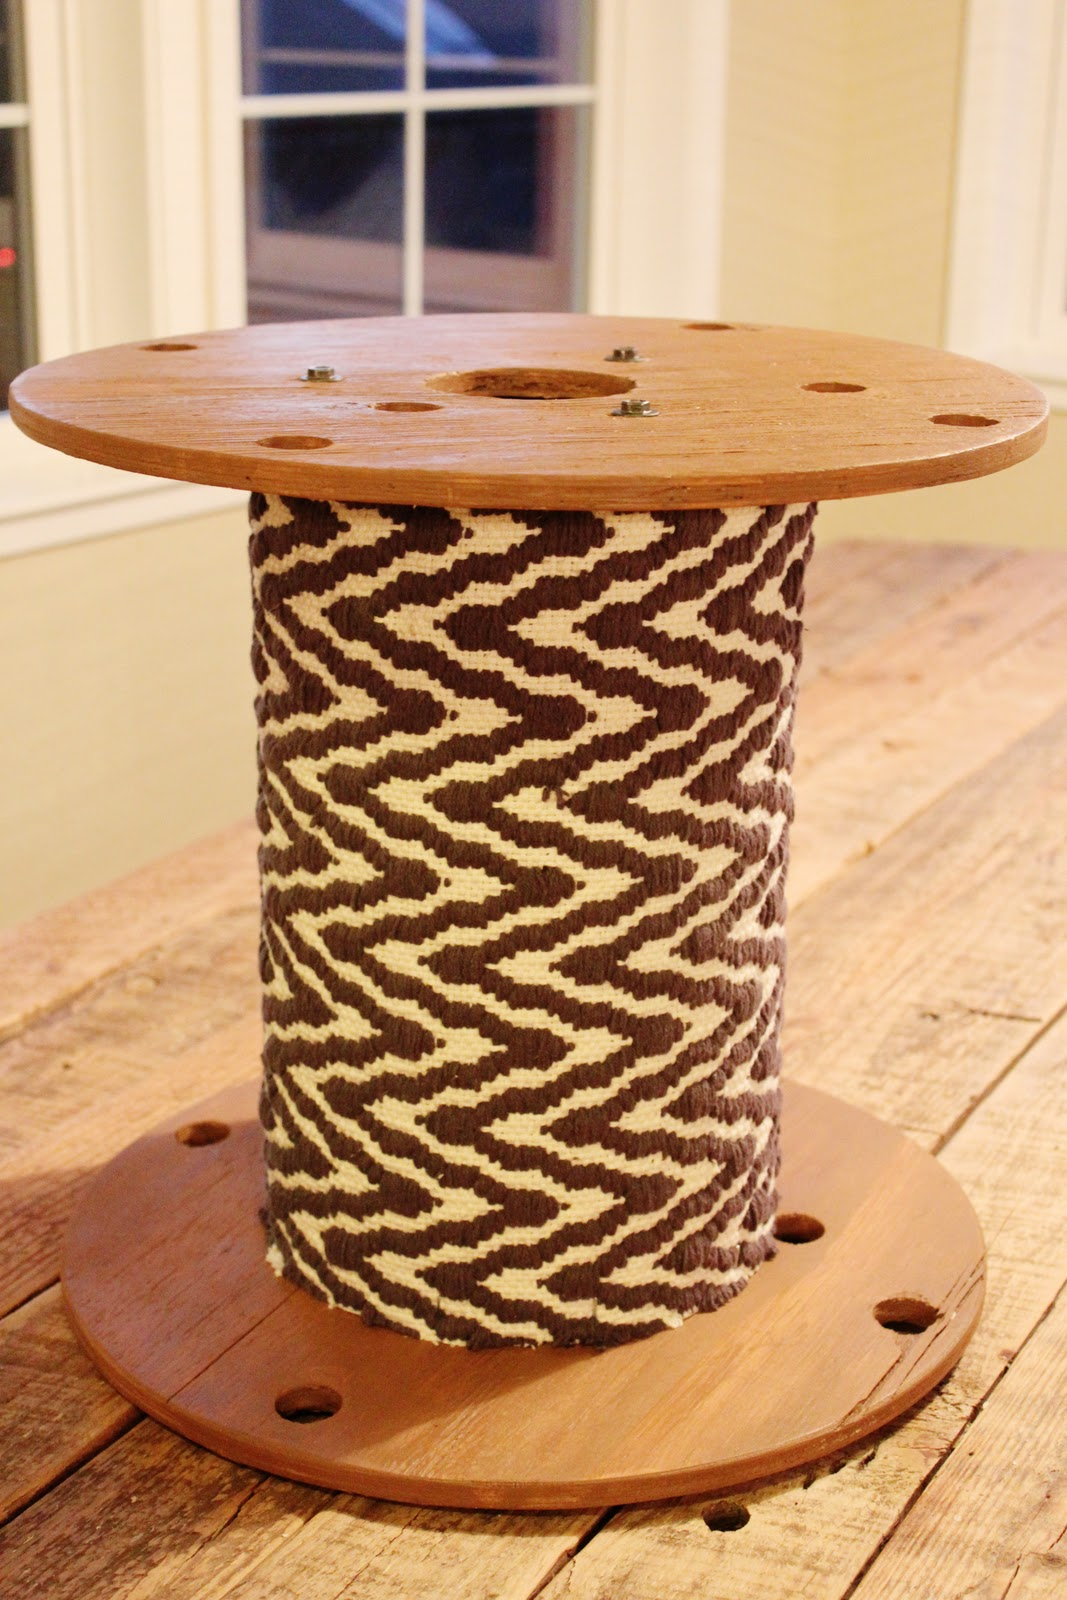 1000 images about wooden spool ideas on pinterest spool for Large wooden spools used for tables